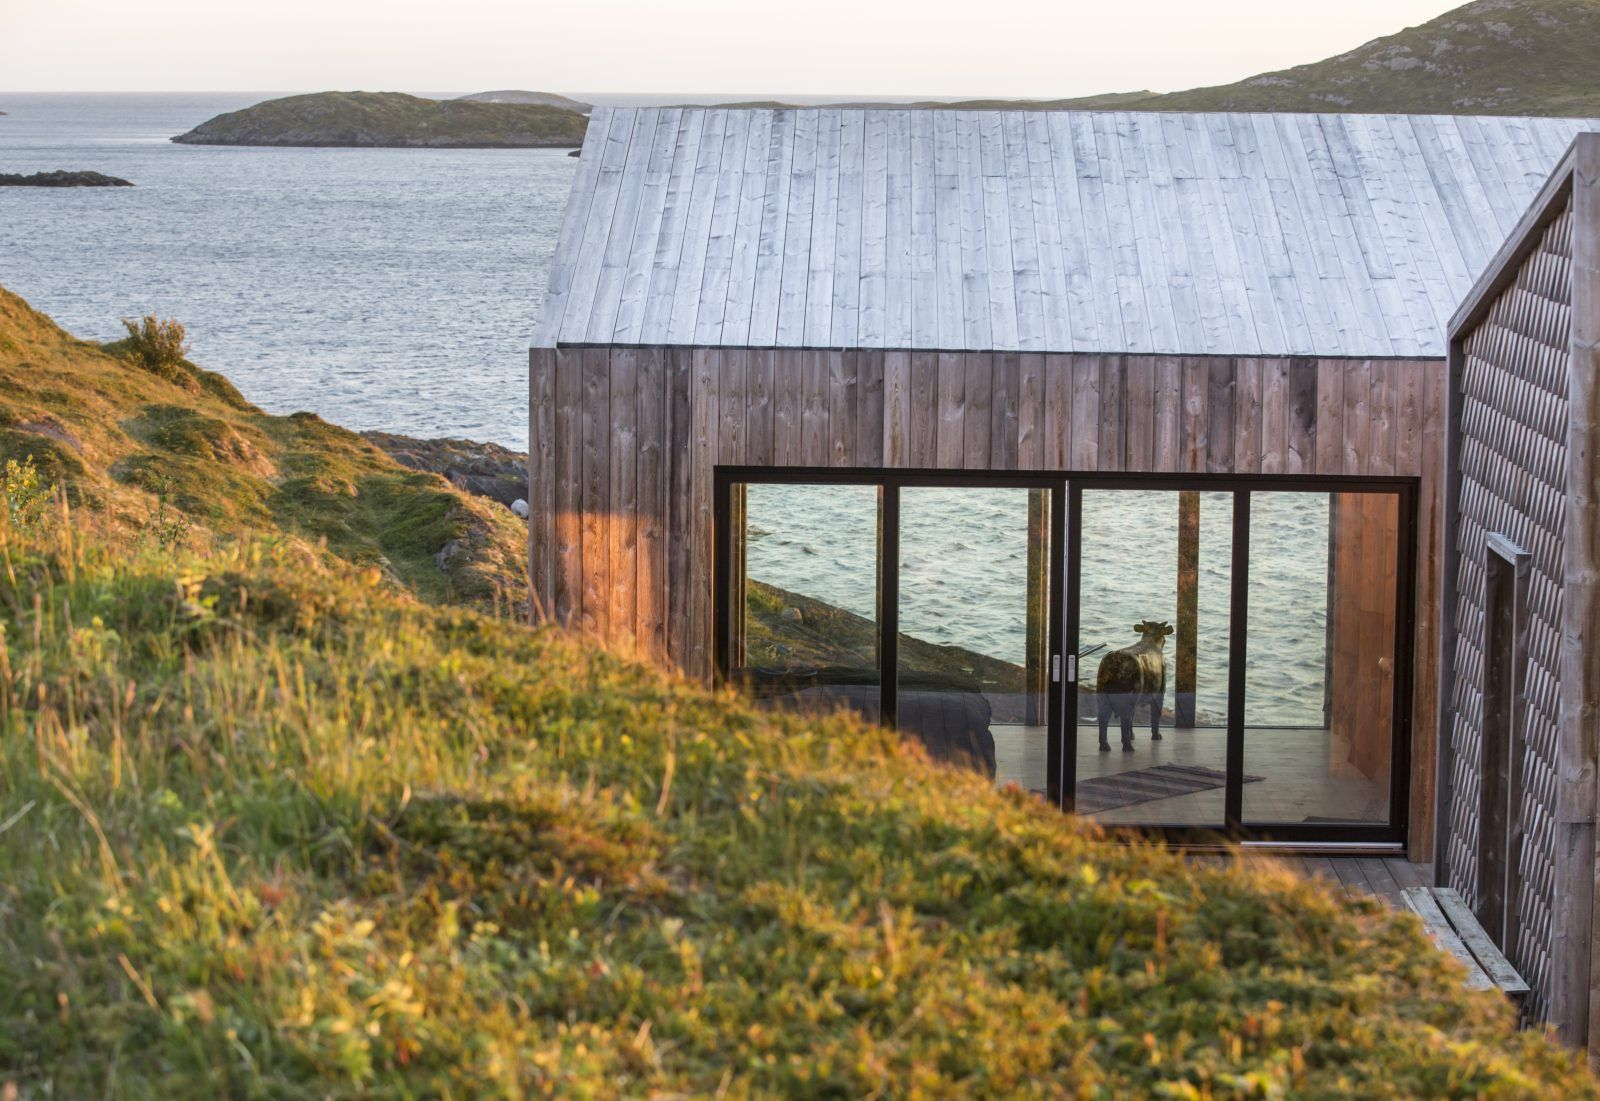 Our 9 bespoke tiny houses in the arctic archipelago of Fleinvær are finally open for booking. Surrounded by a wide horizon your stay at Fordypningsrommet Fleinvær will be an immersive experience allowing for perspective and an unforgettably deep connection with our natural environment.